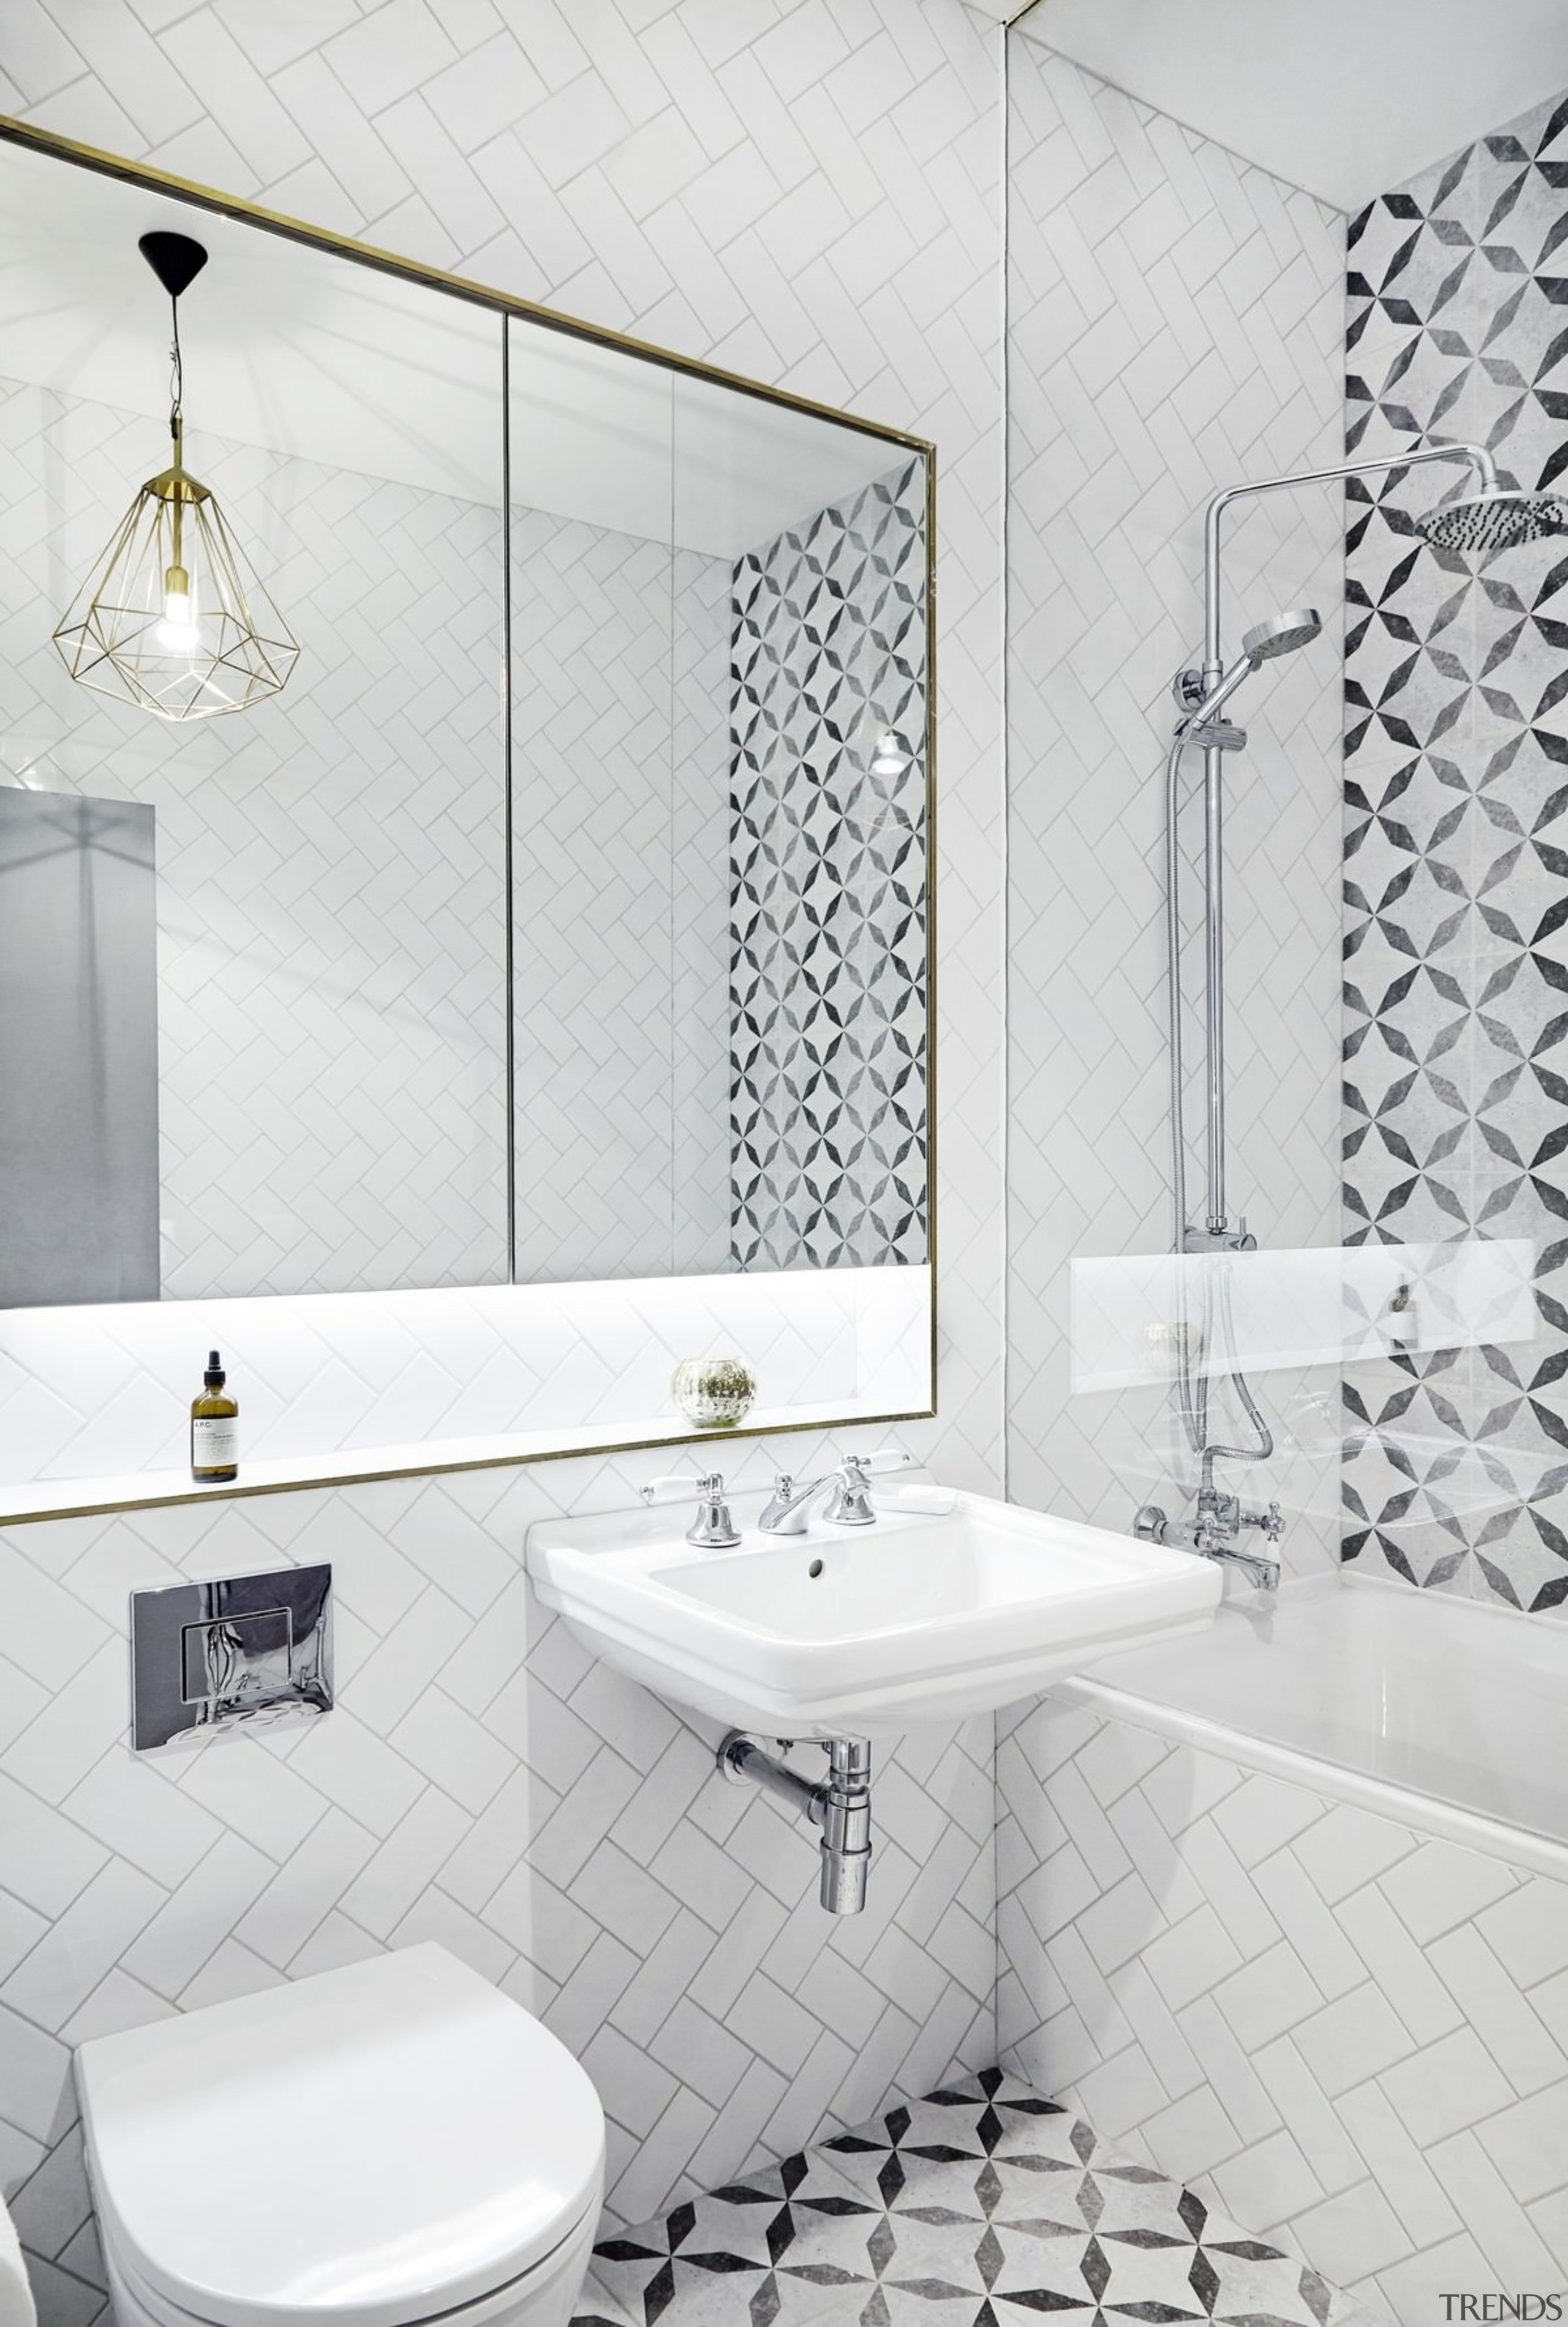 Elements of the old can be found in bathroom, bathroom accessory, ceramic, floor, interior design, plumbing fixture, product design, room, tap, tile, wall, white